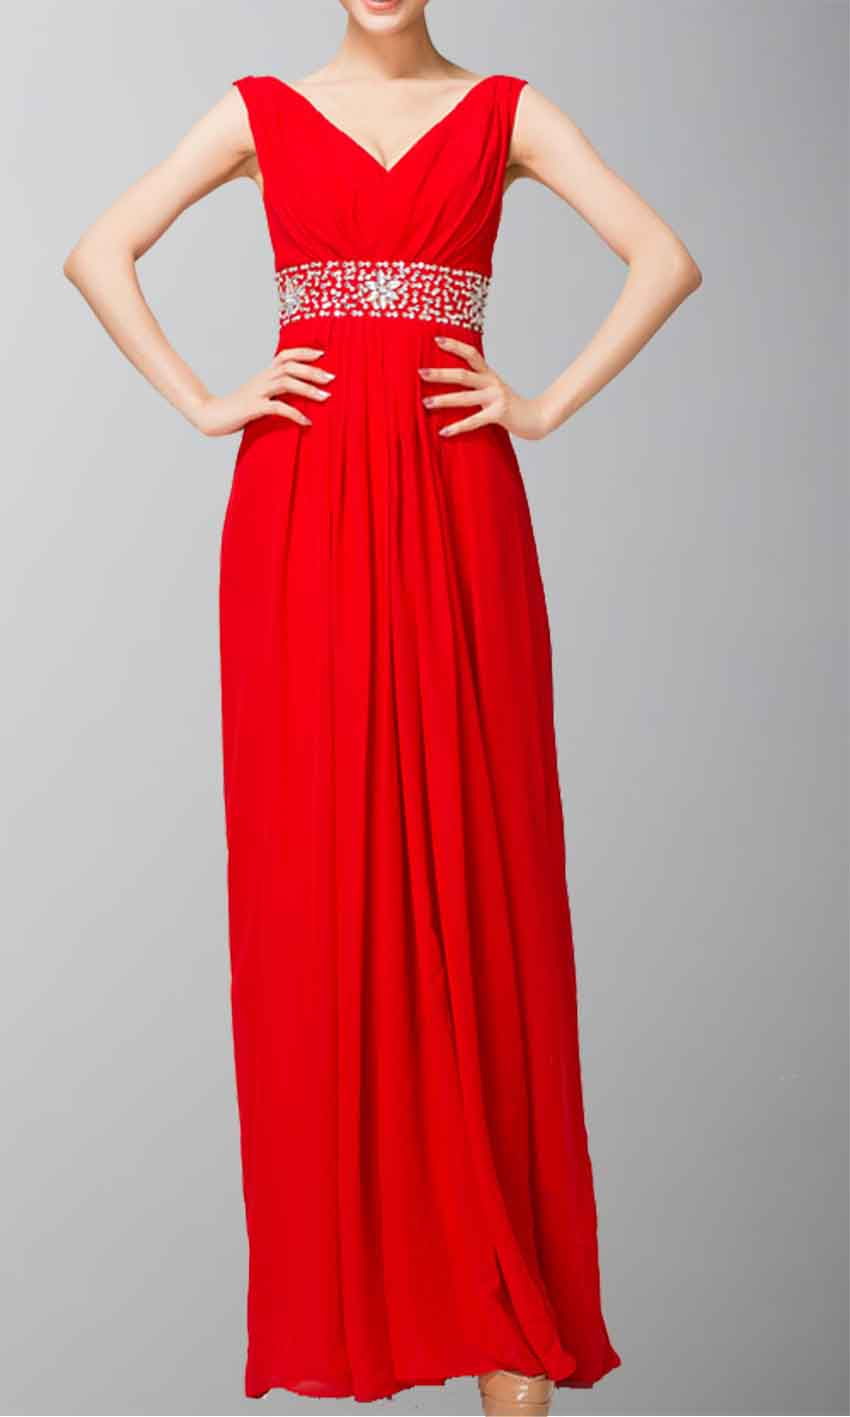 V-neck Long Red Beaded Prom Dress/ Evening Dress KSP158 [KSP158] - £98.00 : Cheap Prom Dresses Uk, Bridesmaid Dresses, 2014 Prom & Evening Dresses, Look for cheap elegant prom dresses 2014, cocktail gowns, or dresses for special occasions? kissprom.co.uk offers various bridesmaid dresses, evening dress, free shipping to UK etc.